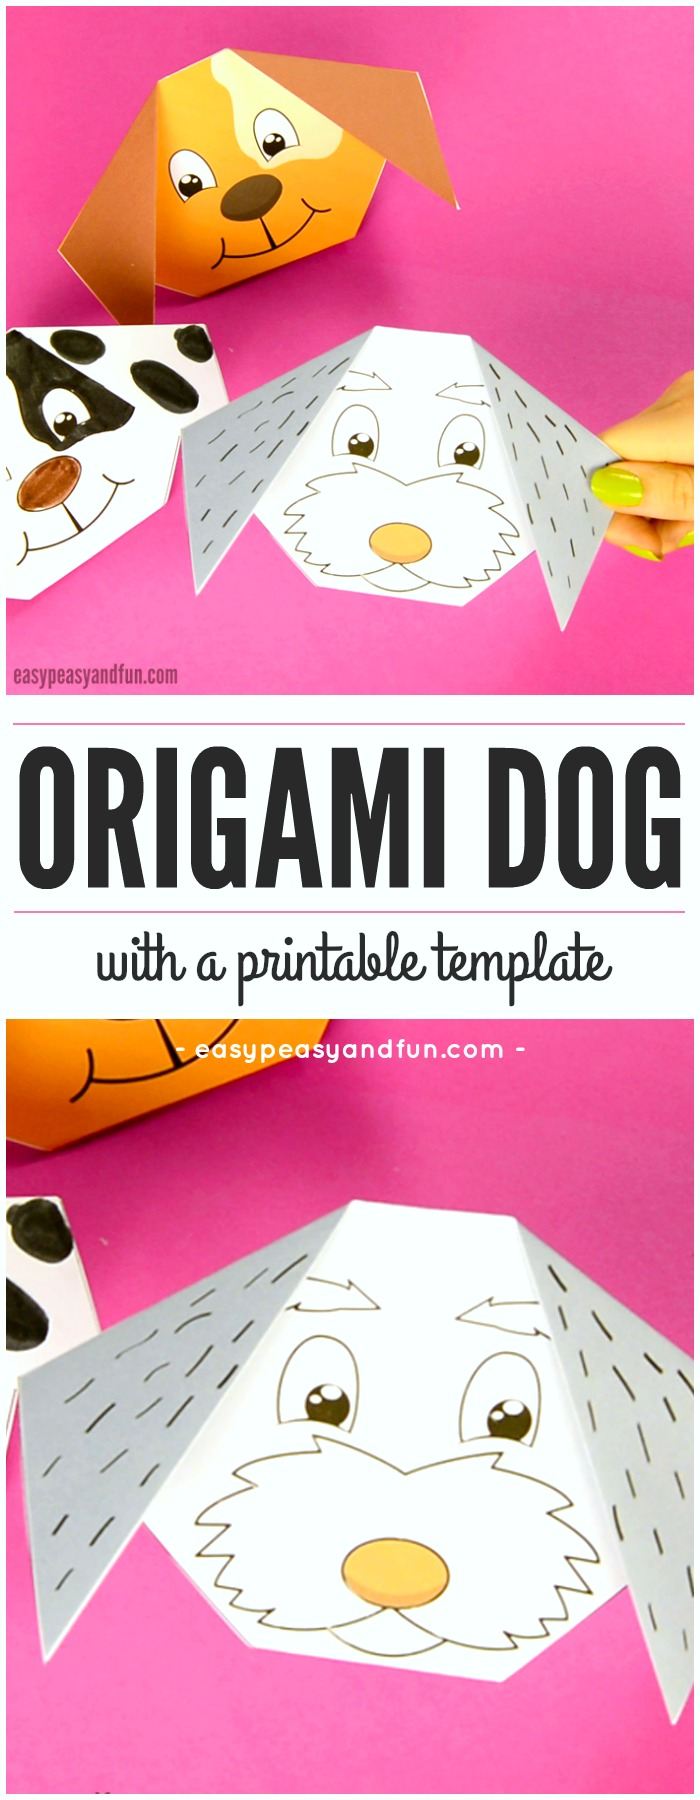 How to make an origami dog easy peasy and fun cute origami dog with printable template jeuxipadfo Gallery